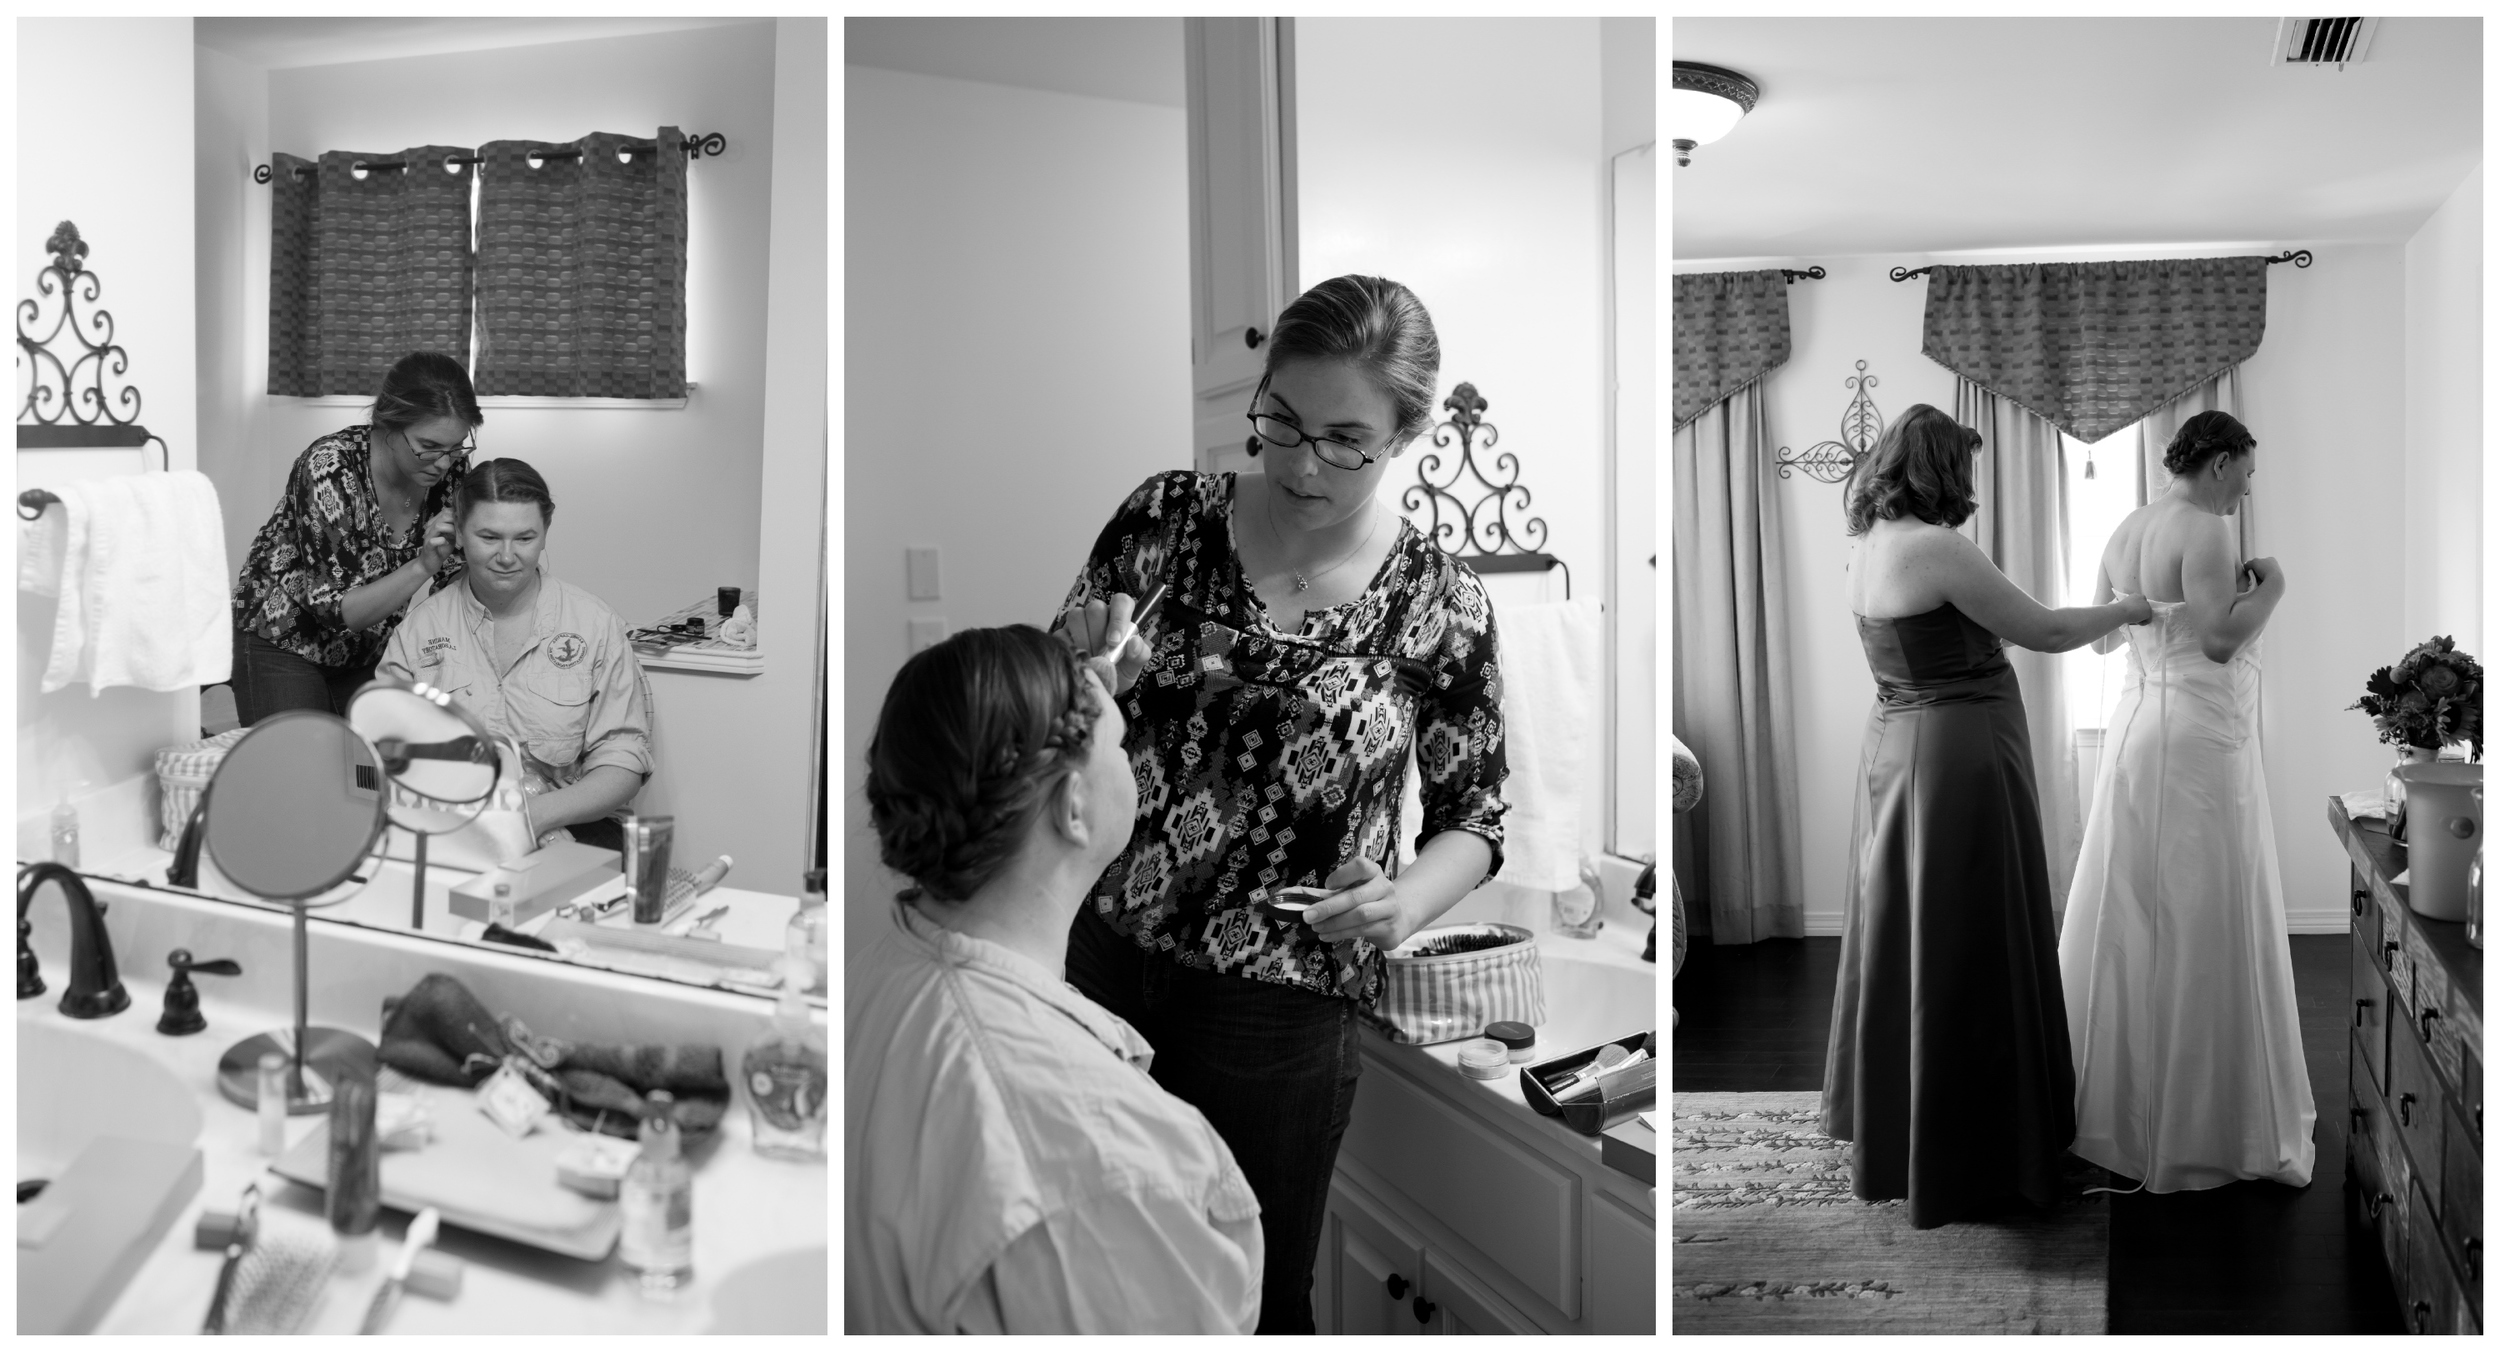 wedding preparation (hair and makeup) in black and white